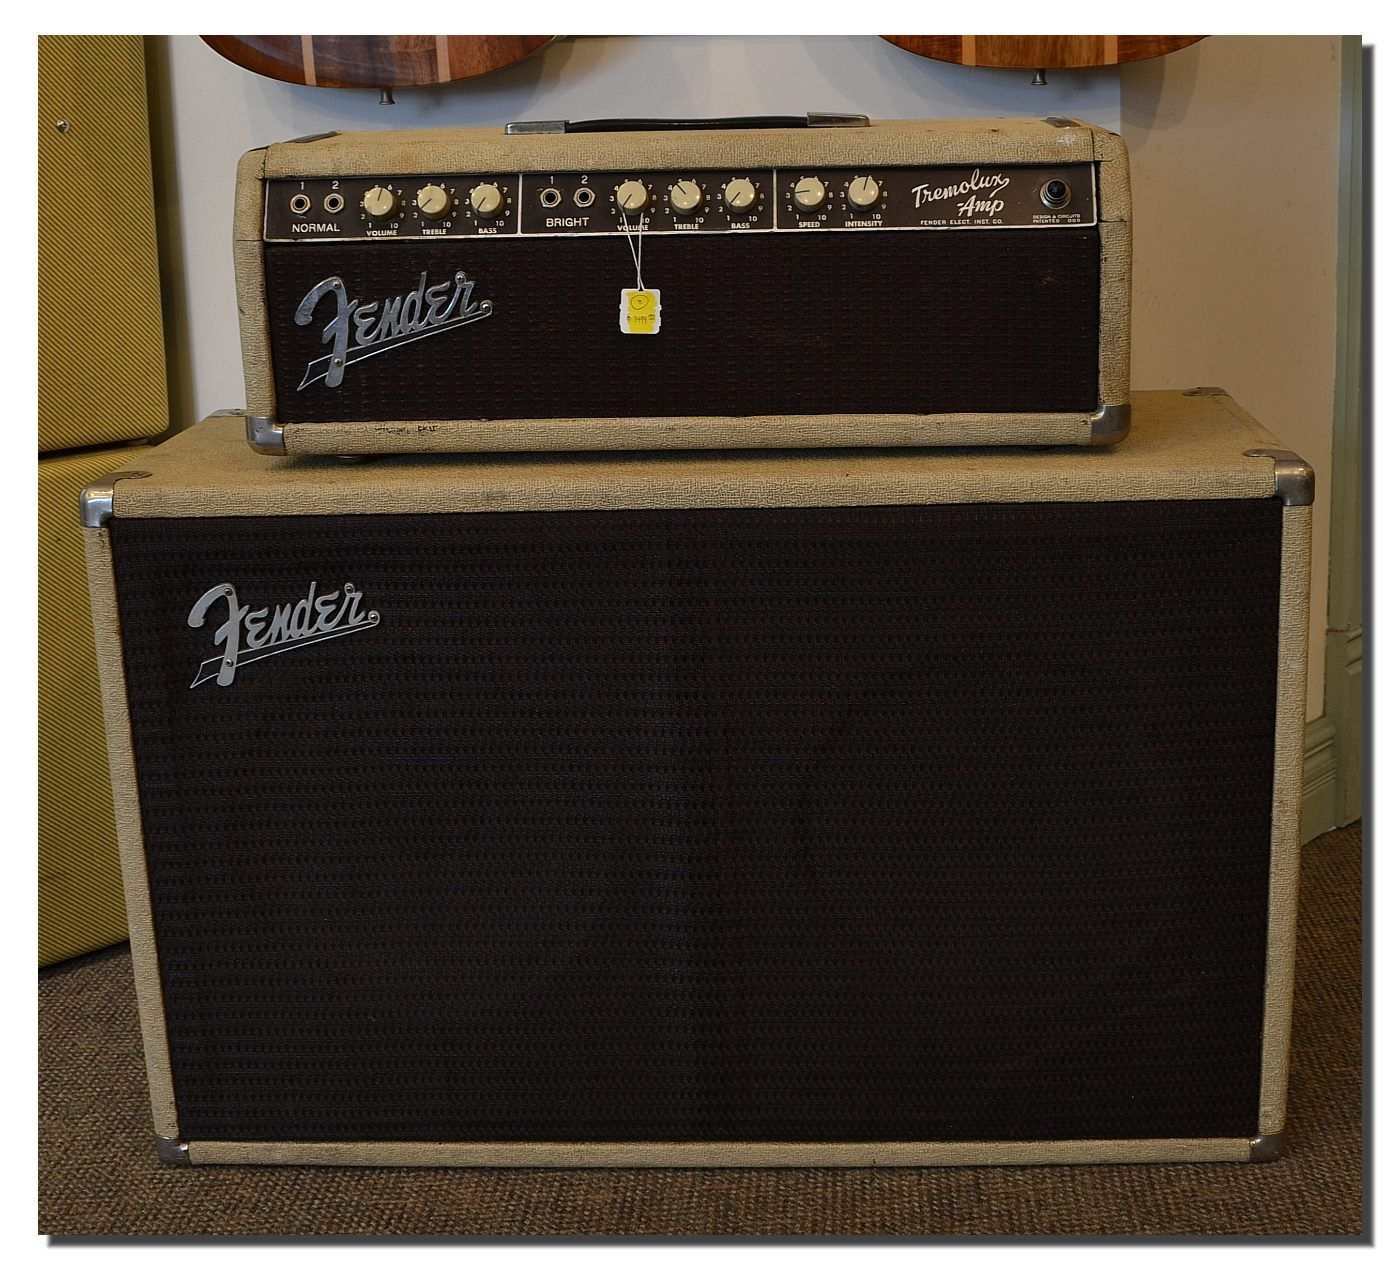 blonde fender tolex original product top cab bassman bandmaster with cabinet amp